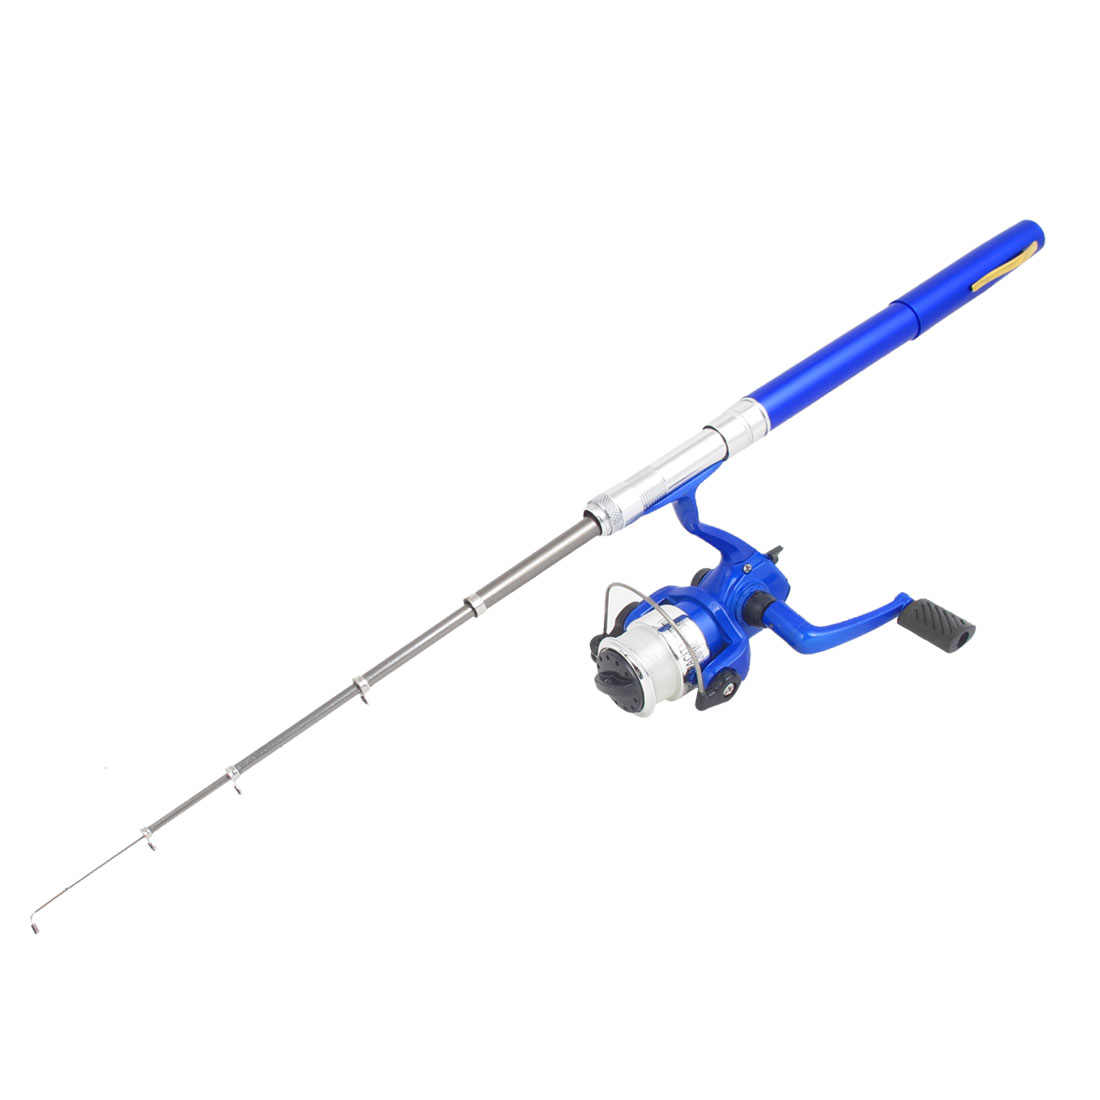 Aluminum Alloy Portable 6 Sections Mini Pocket Telescopic Pen Fishing Rod Spinning Reel Blue 3ft